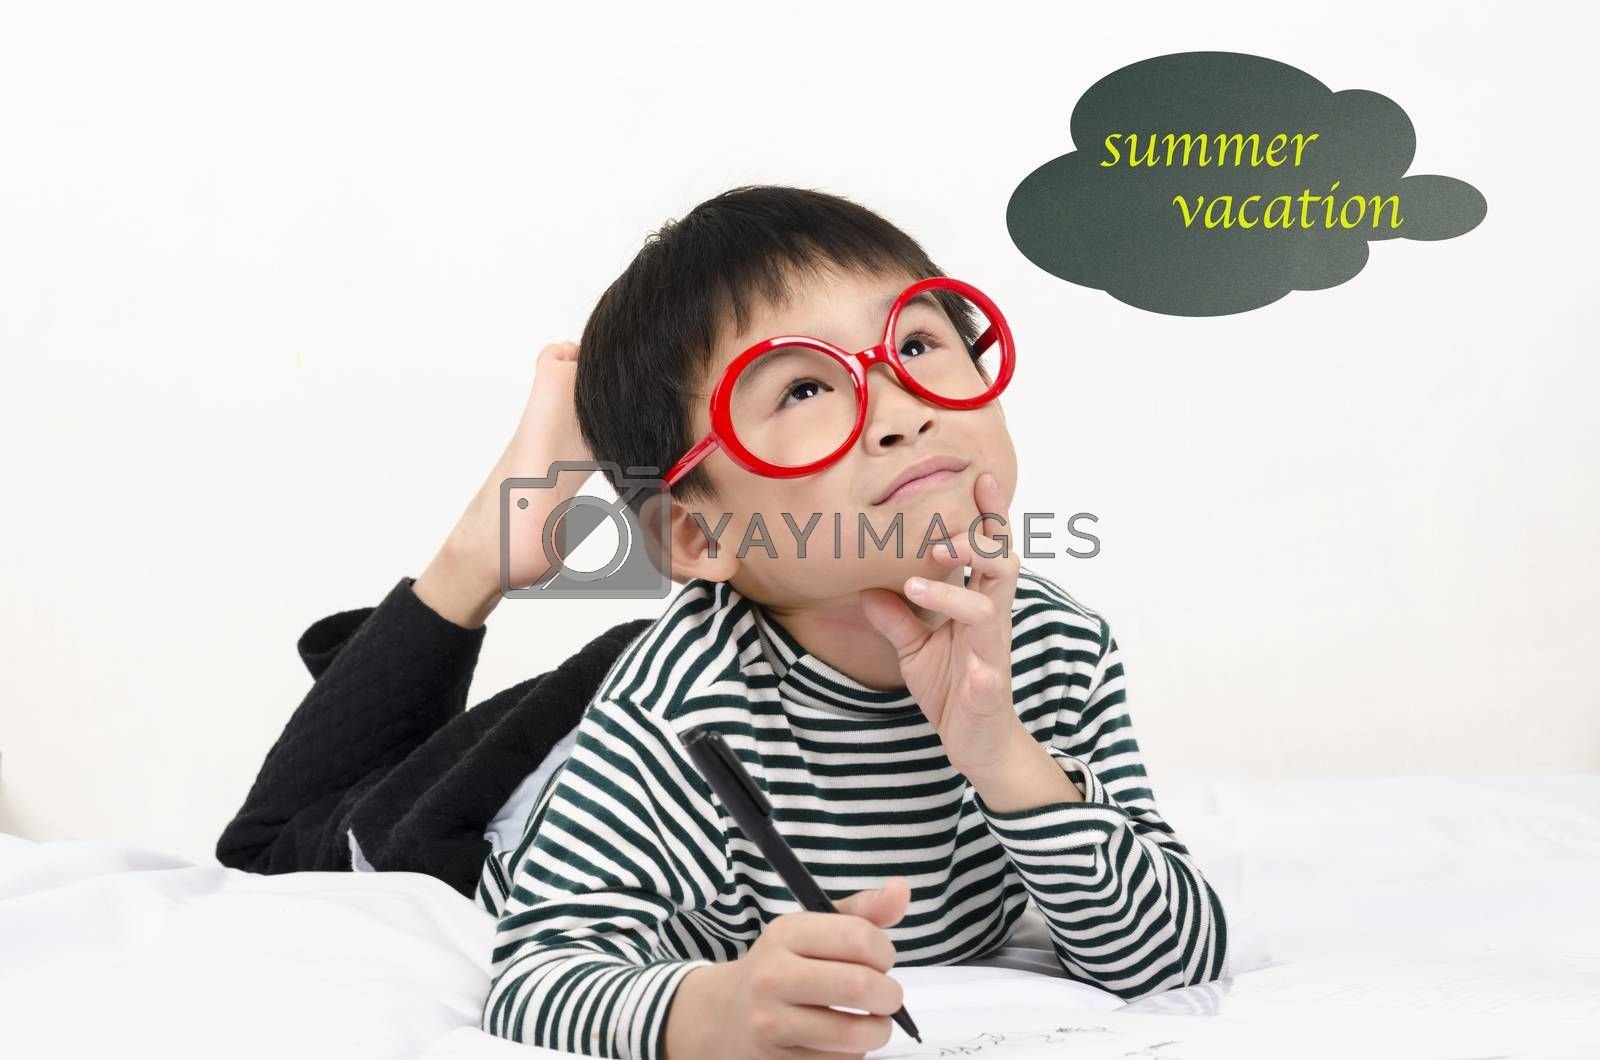 Royalty free image of Hard study student thinking summer vacation by FrankyLiu